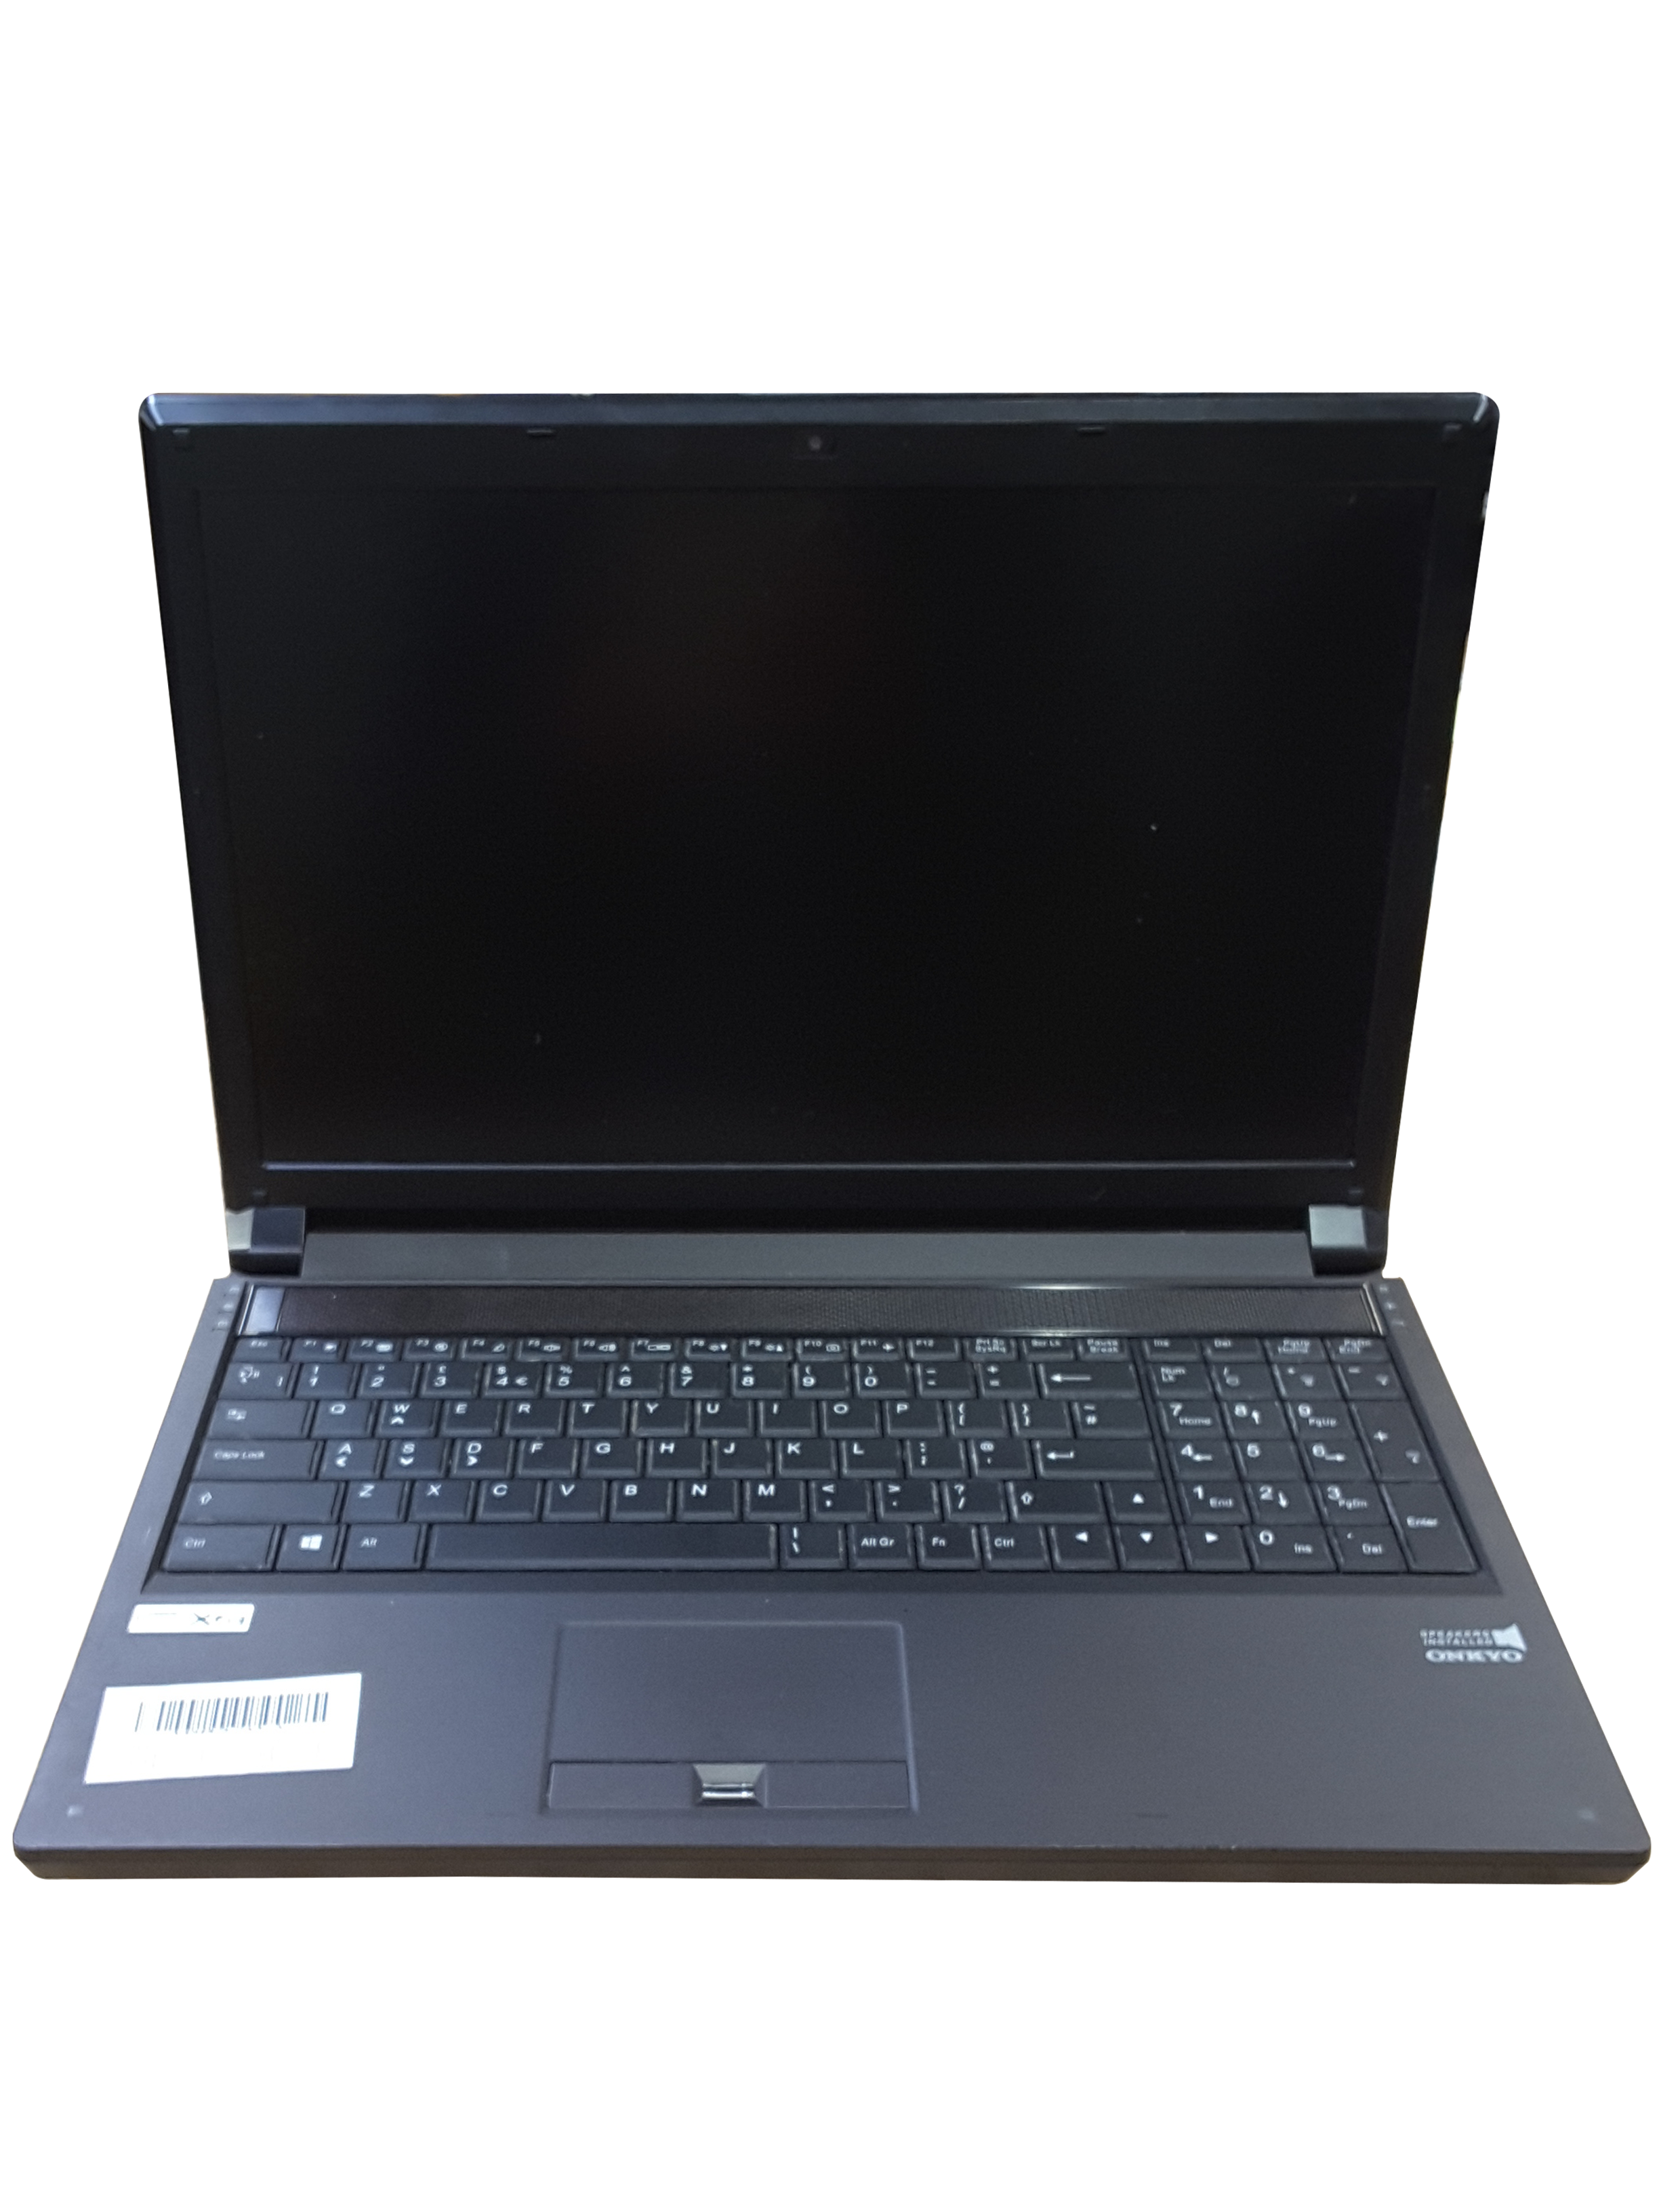 45 x i5 & i7 & AMD A8/A9/A10 Used Retail Laptops - Deal 271